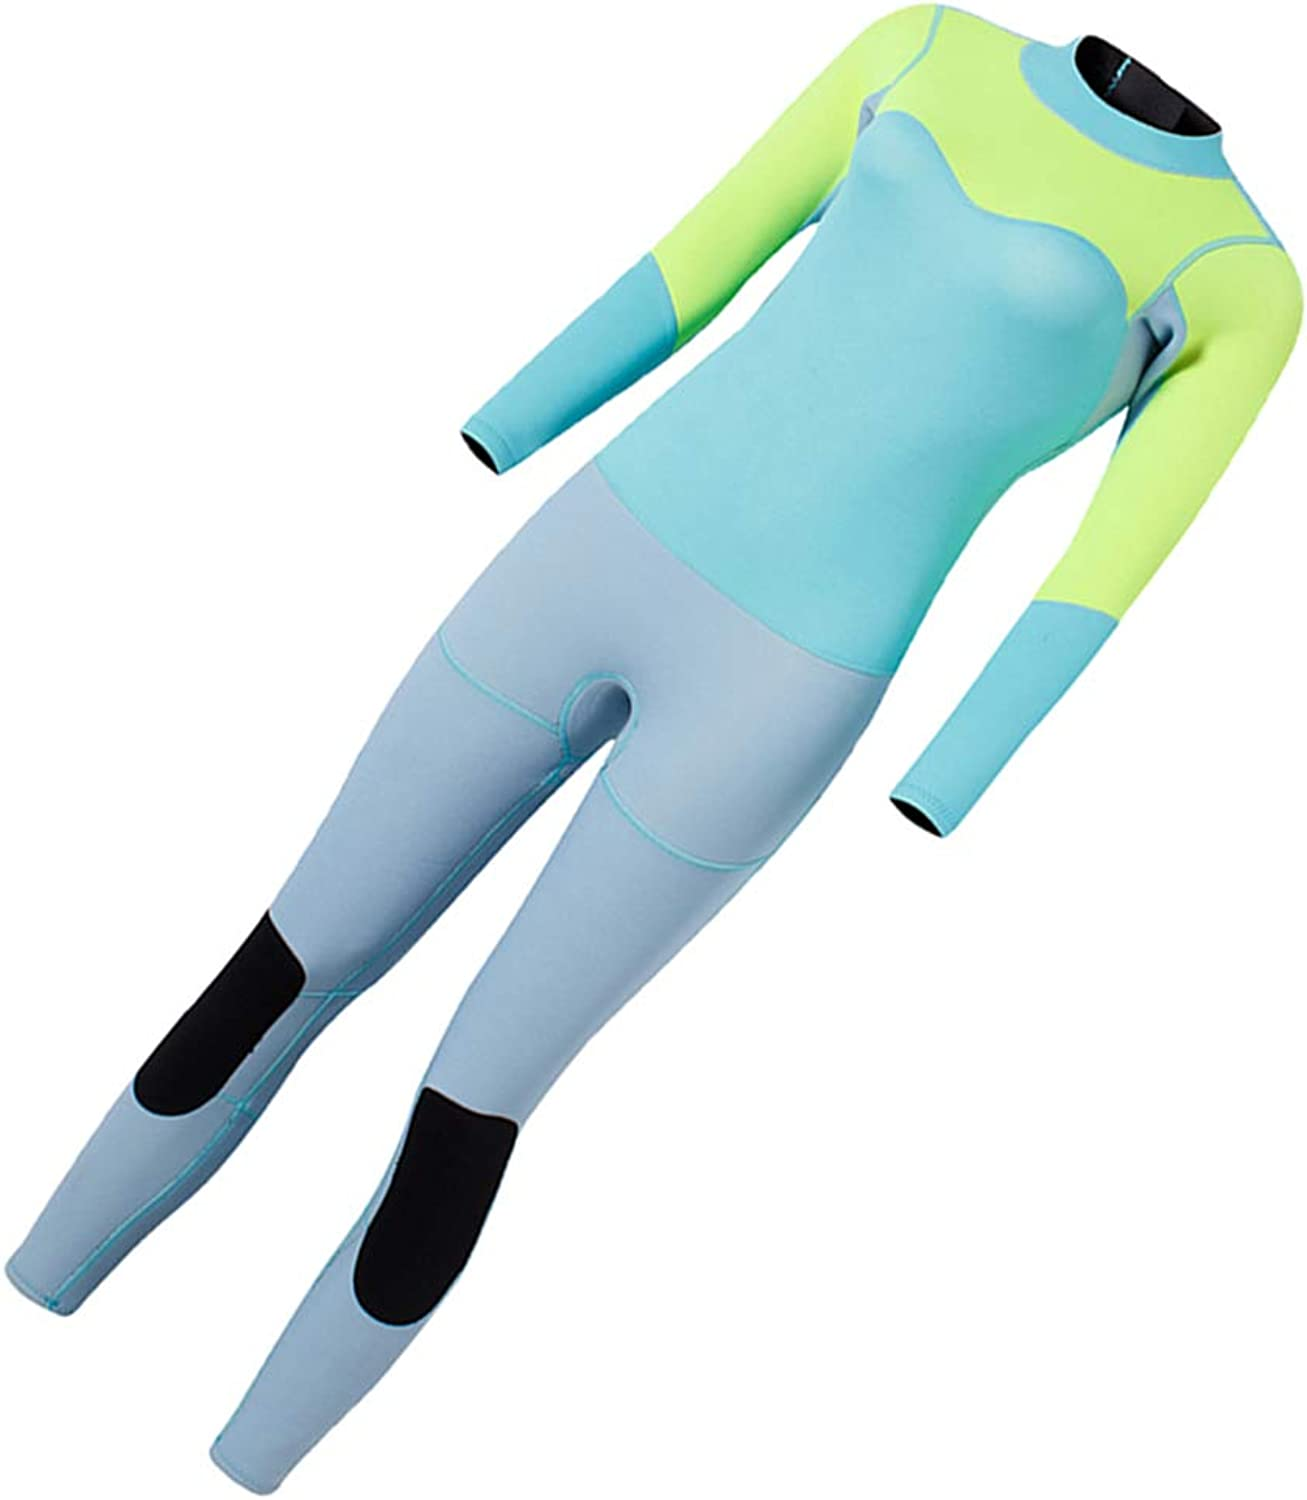 SM SunniMix Full Wetsuits 3mm Neoprene Swimsuit Perfect for Diving Surfing Snorkeling- One Piece Women Wet Suit Bright color